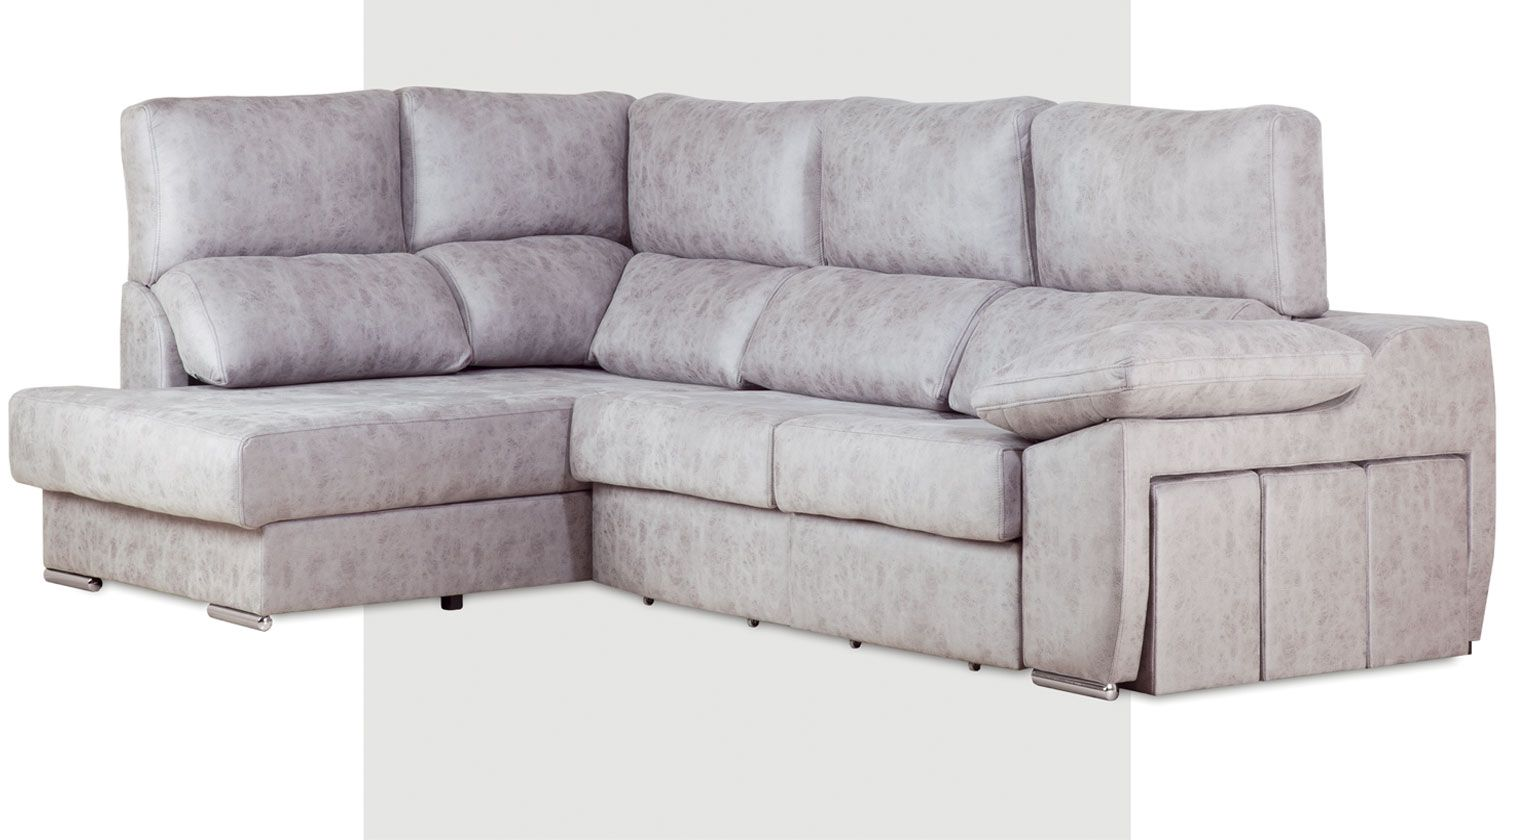 Sof rinconera madrid sofas rinconera for Cheslong baratos madrid